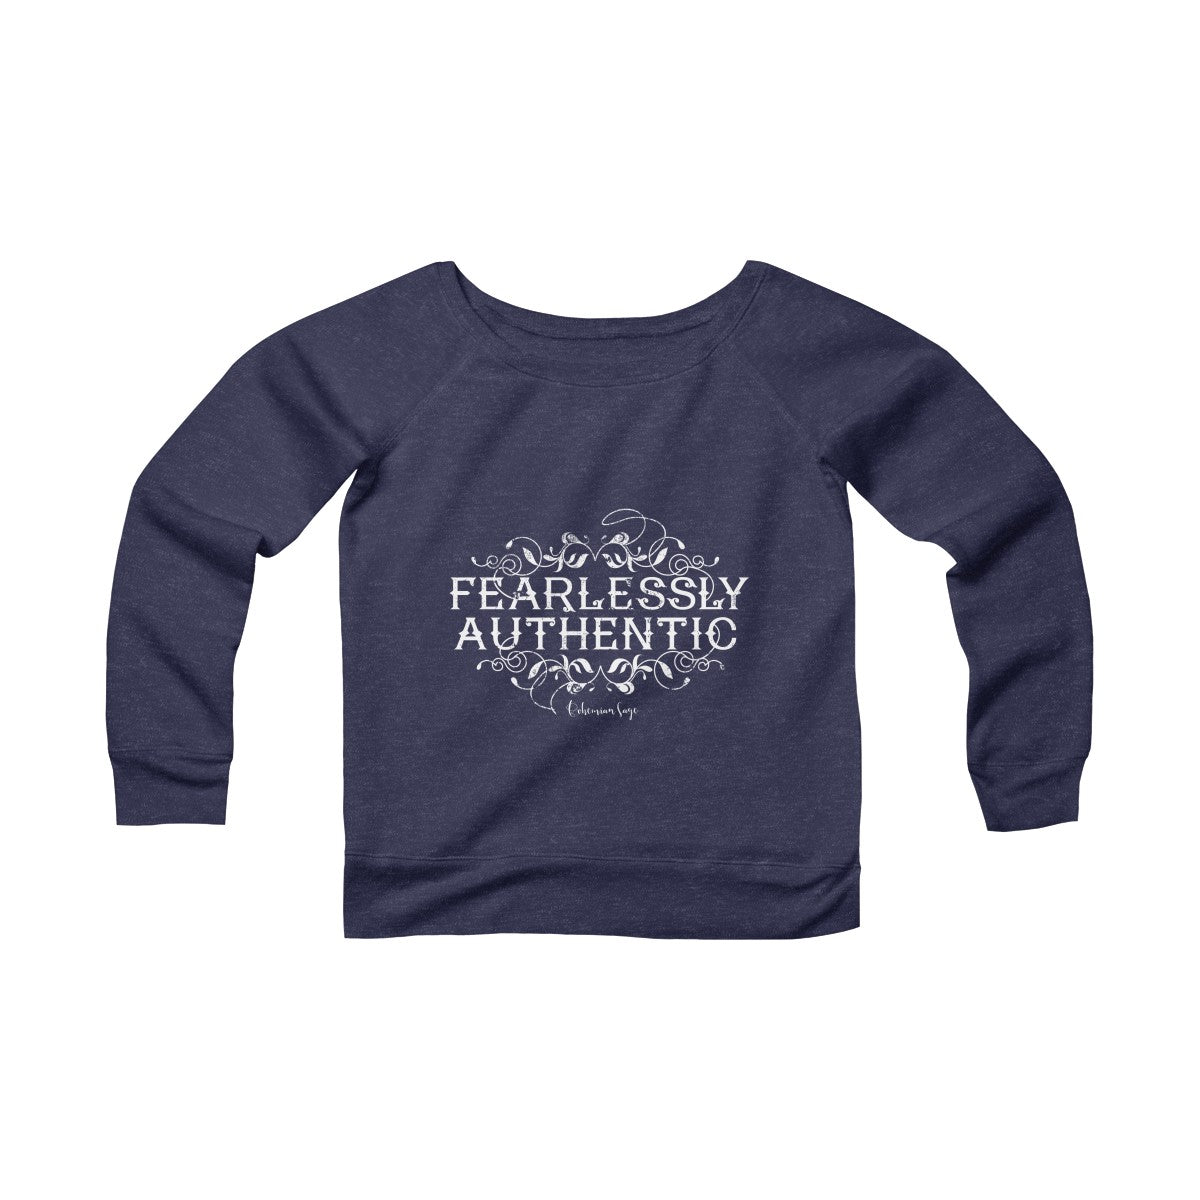 Women's Fleece Off the Shoulder Yoga Sweatshirt | Fearlessly Authentic